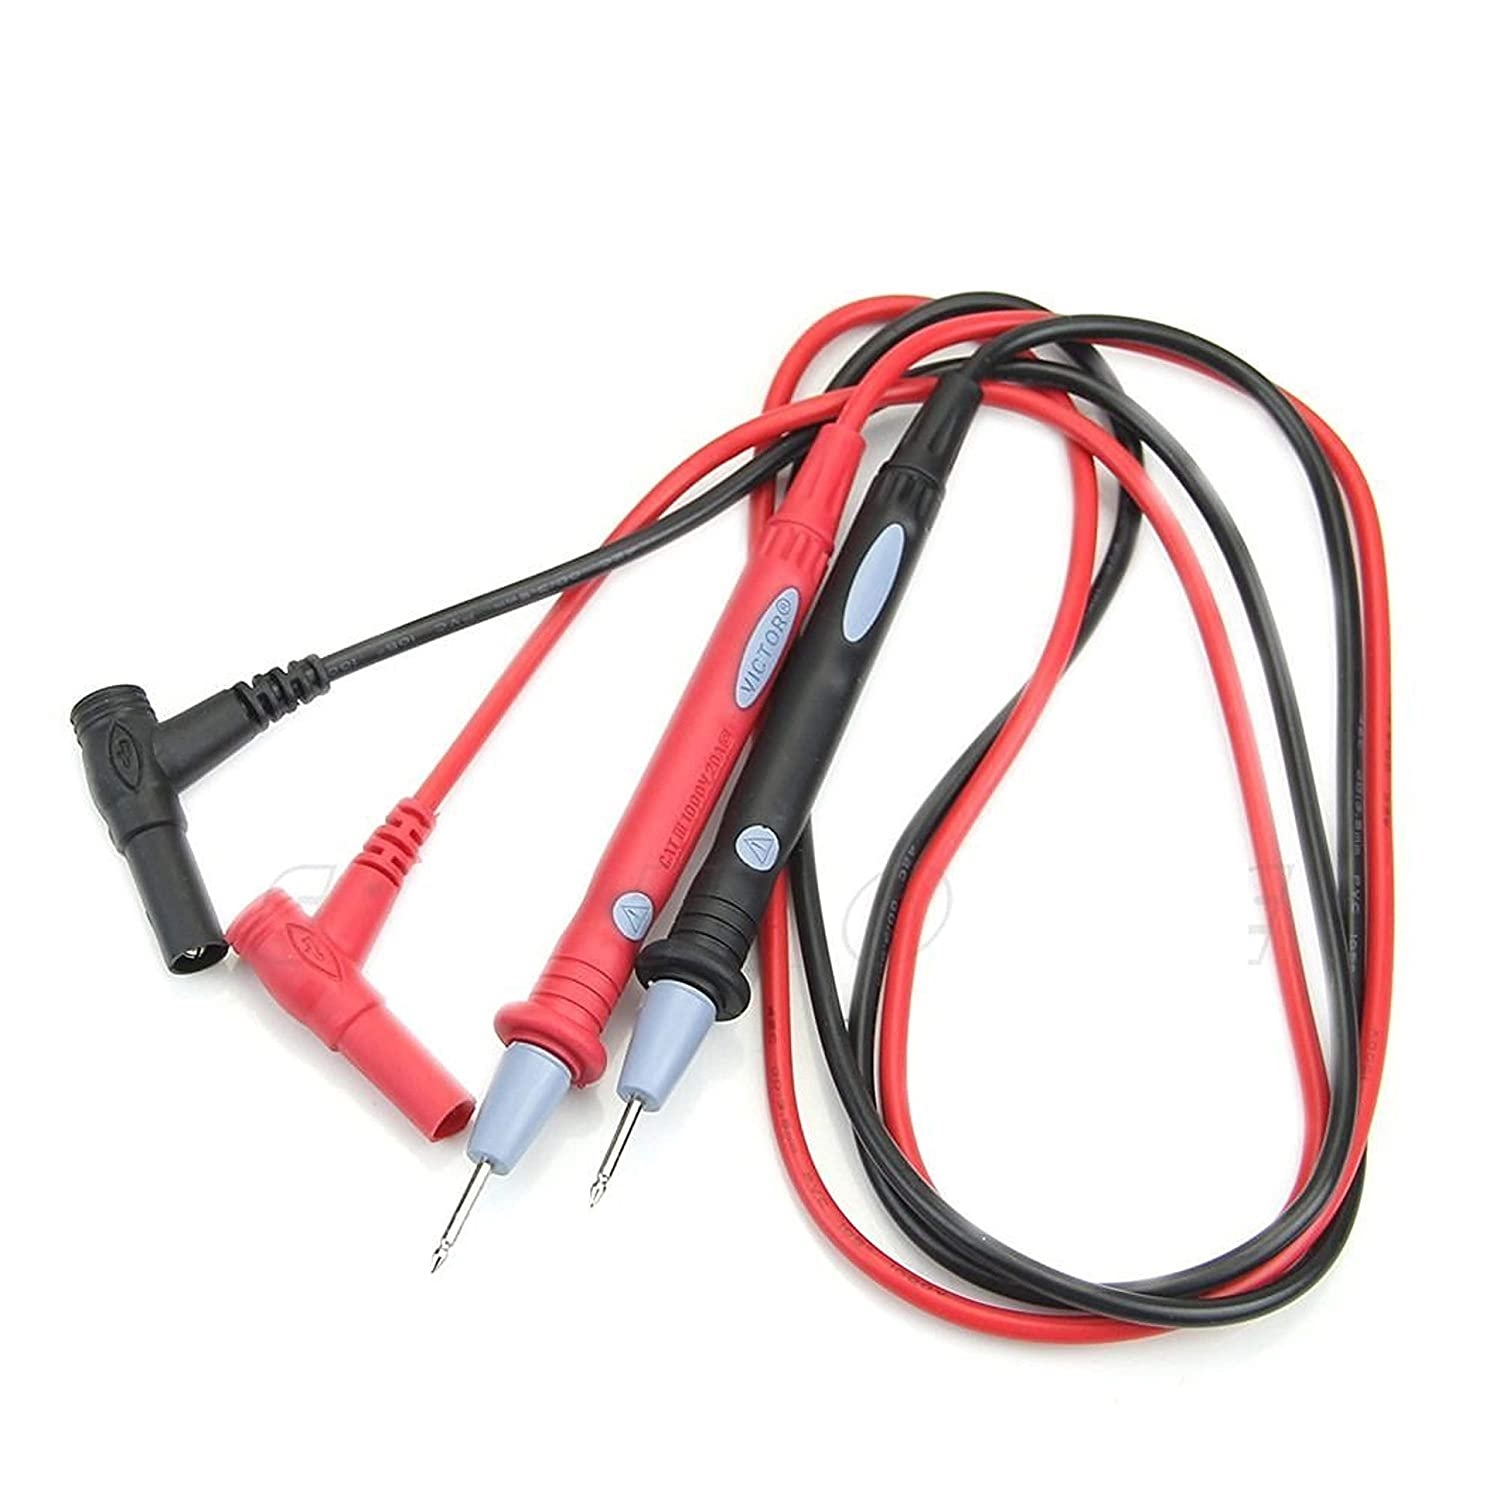 Universal New Digital  Multimetre Lead Probes Plug Test Cable Wire Multi Meter for  Electronic Work .